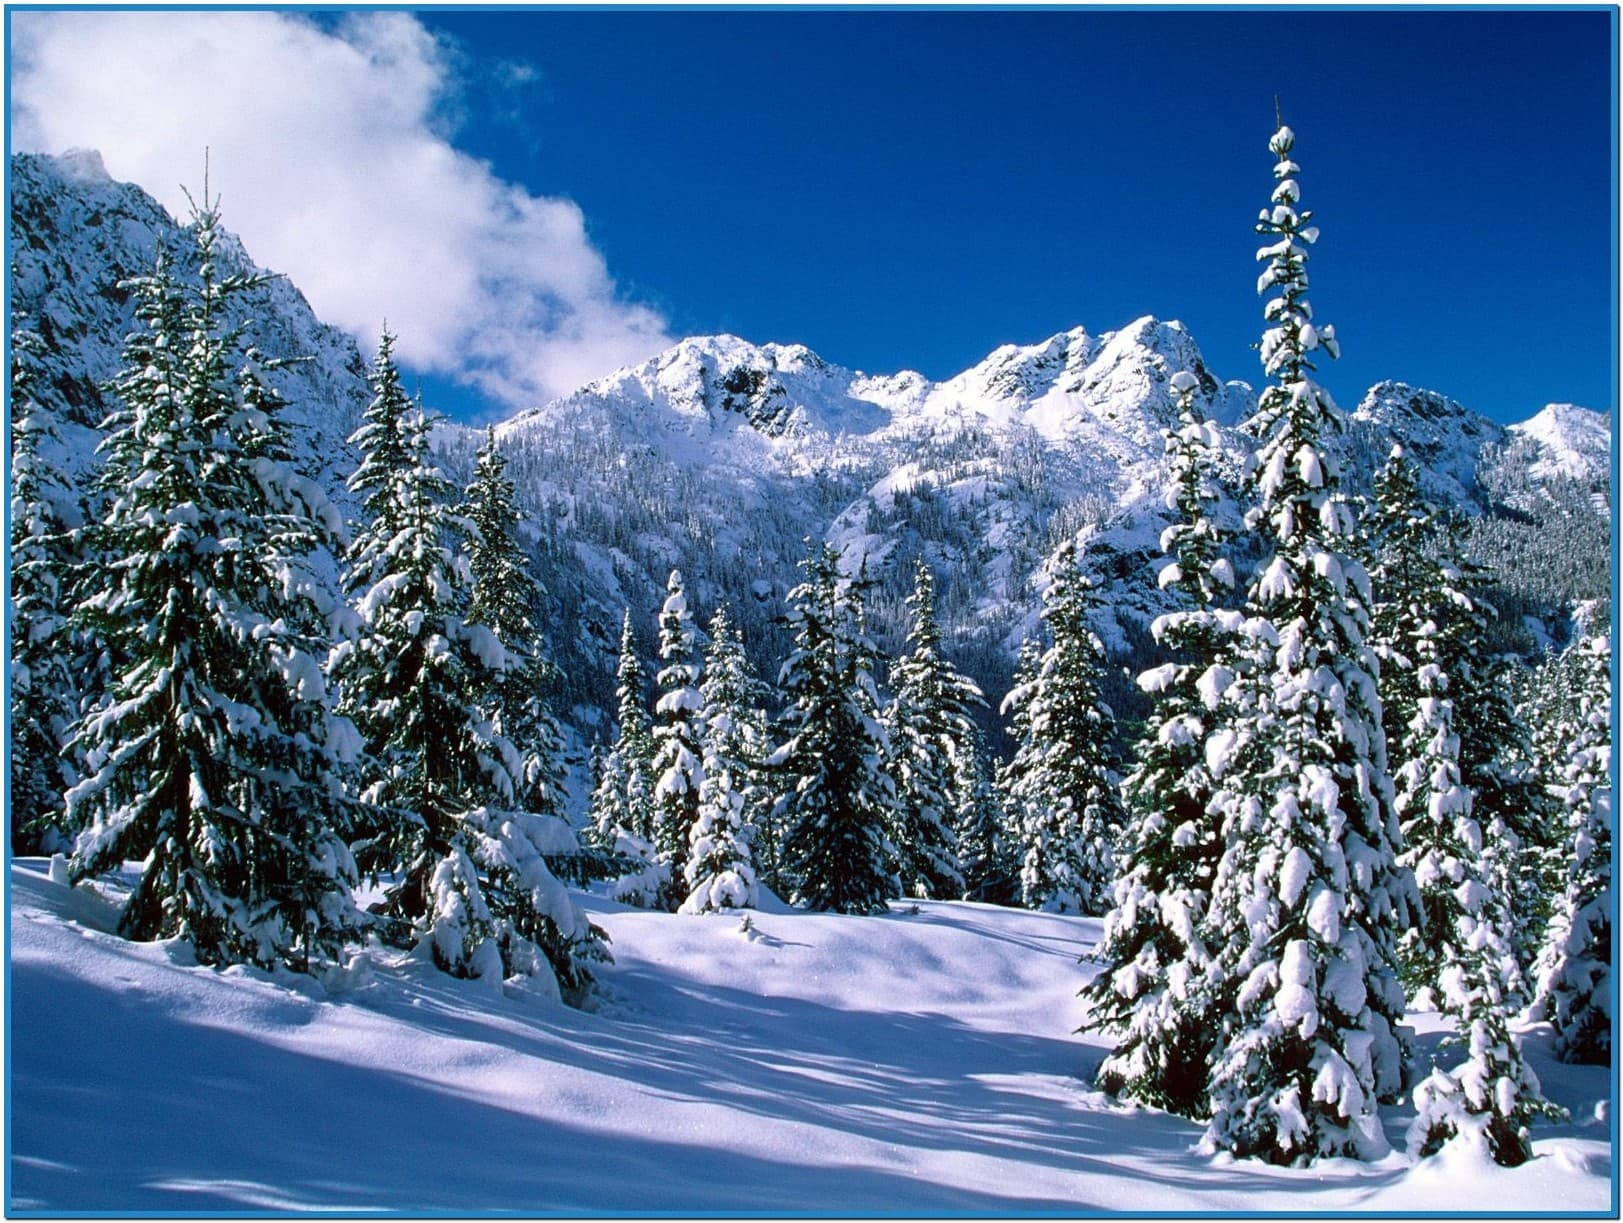 Screensaver wallpaper winter   Download 1623x1223